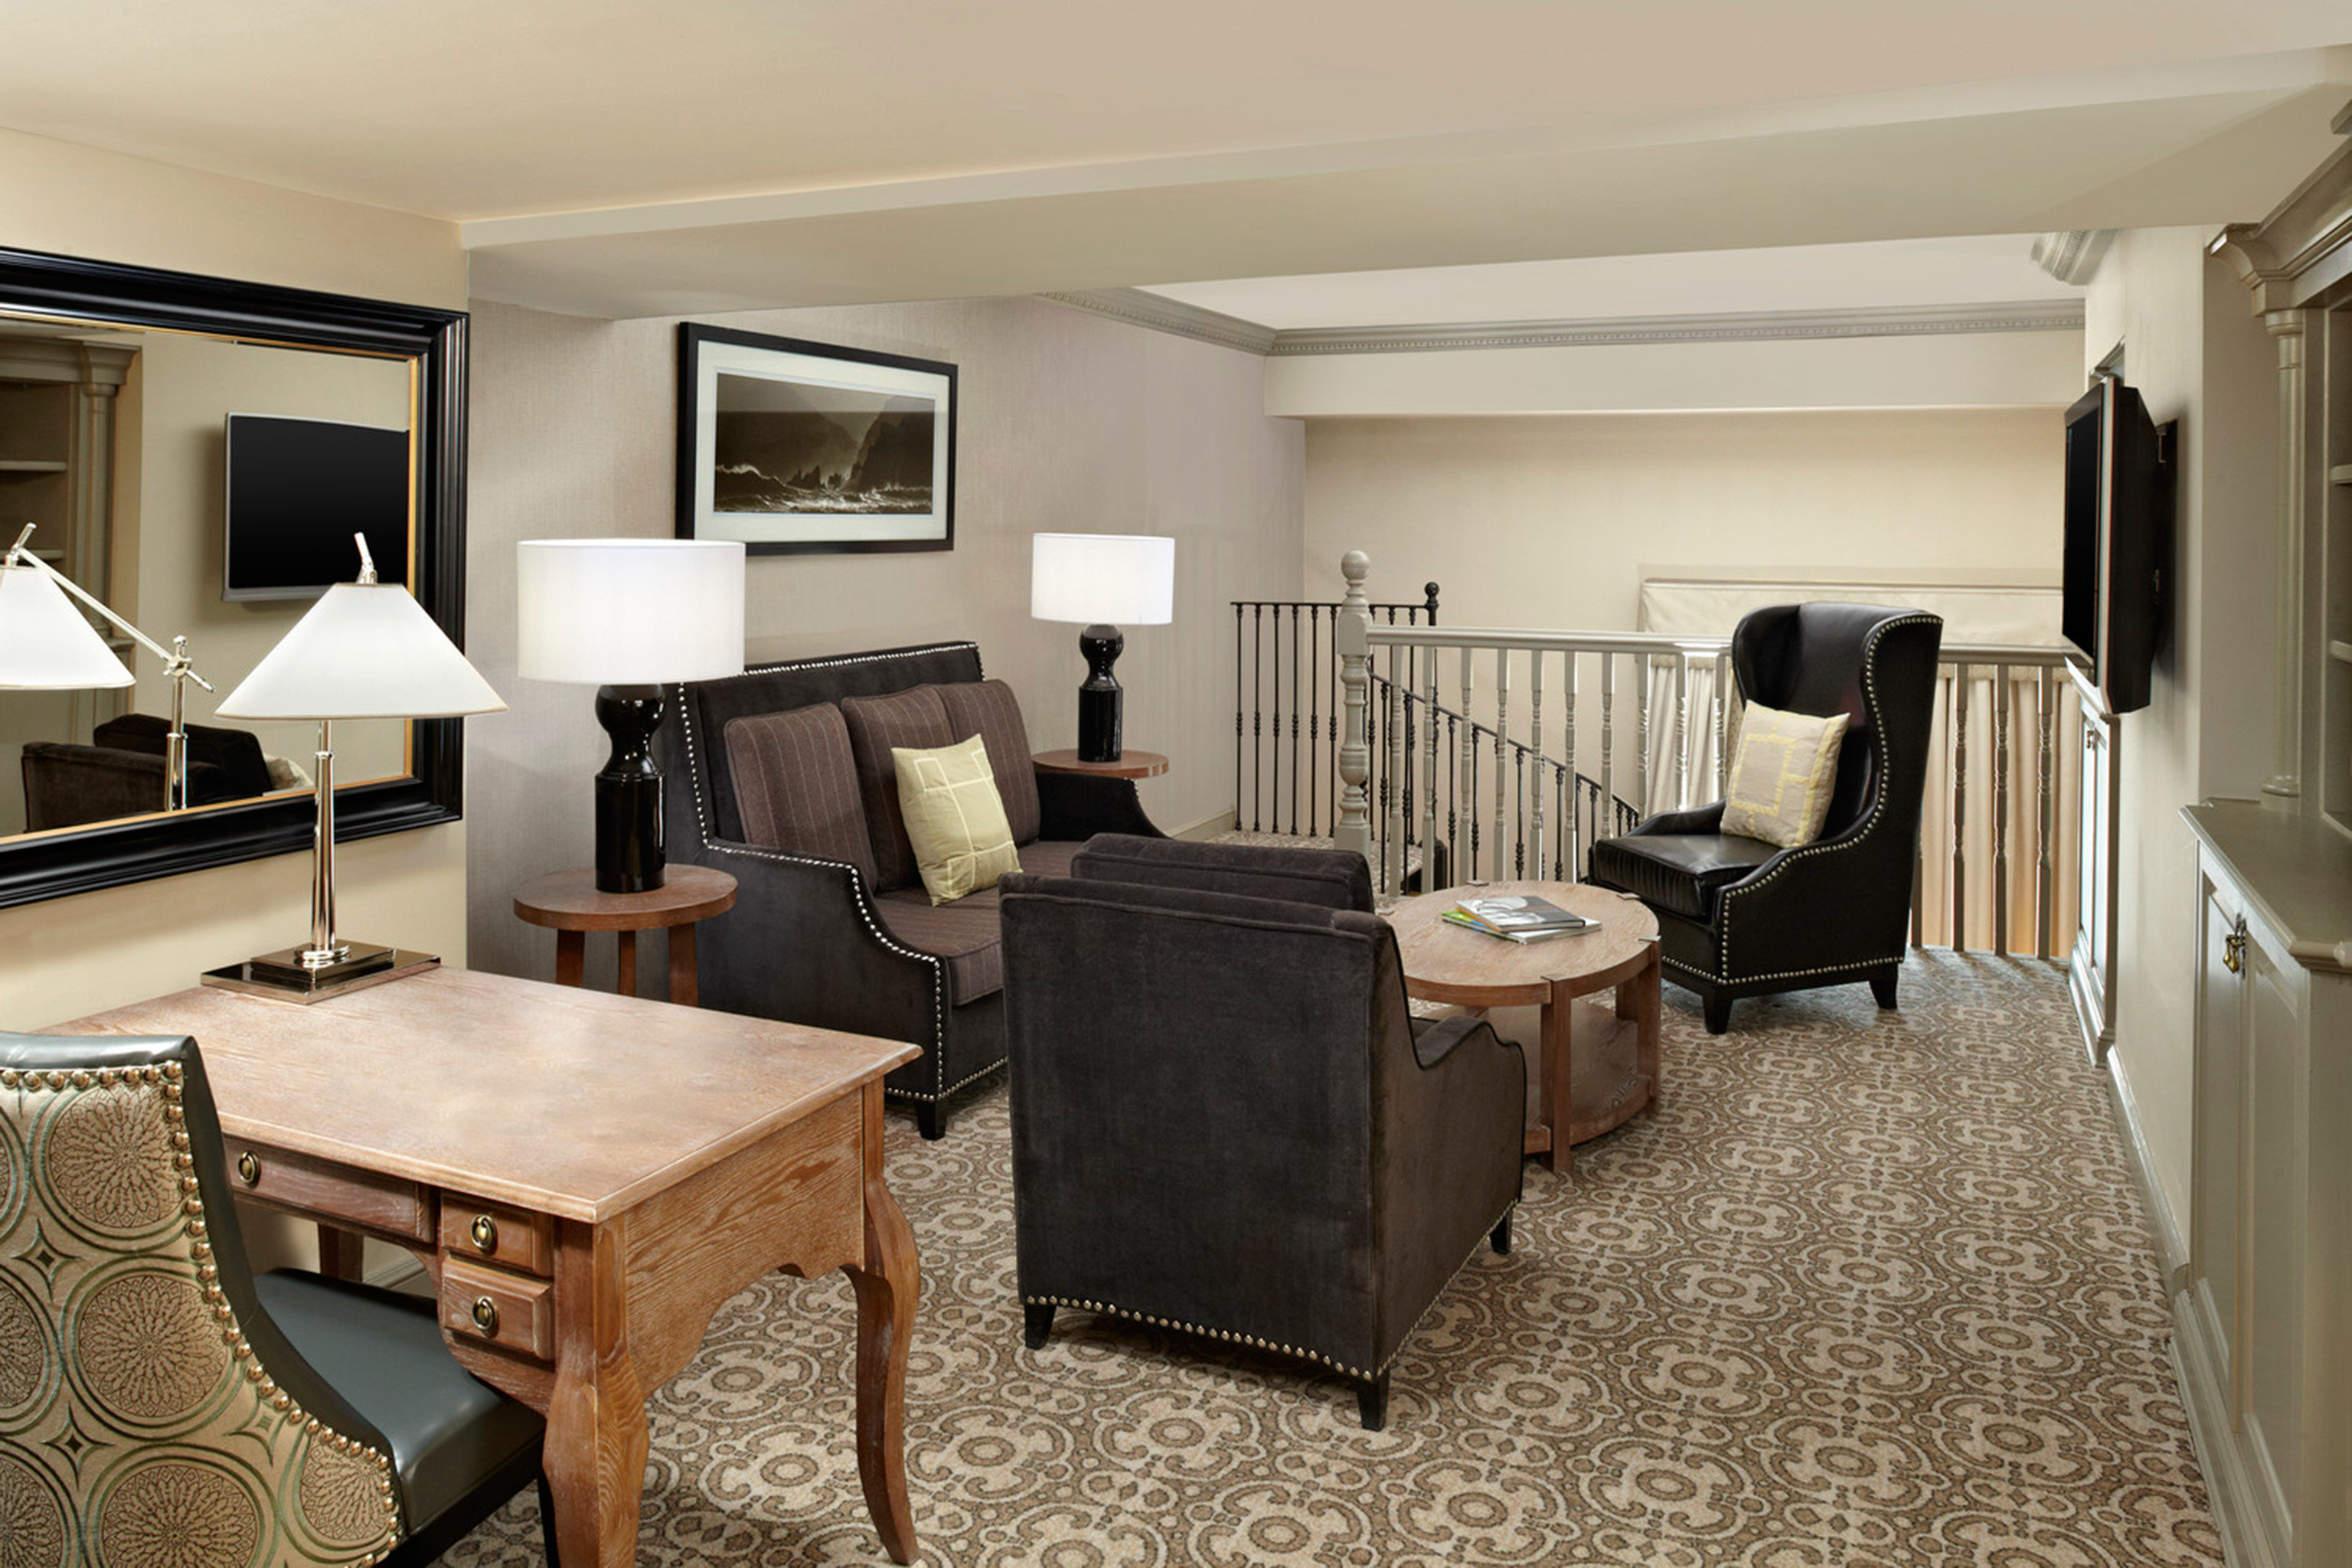 Luxury property chair Suite home living room condominium Bedroom cottage